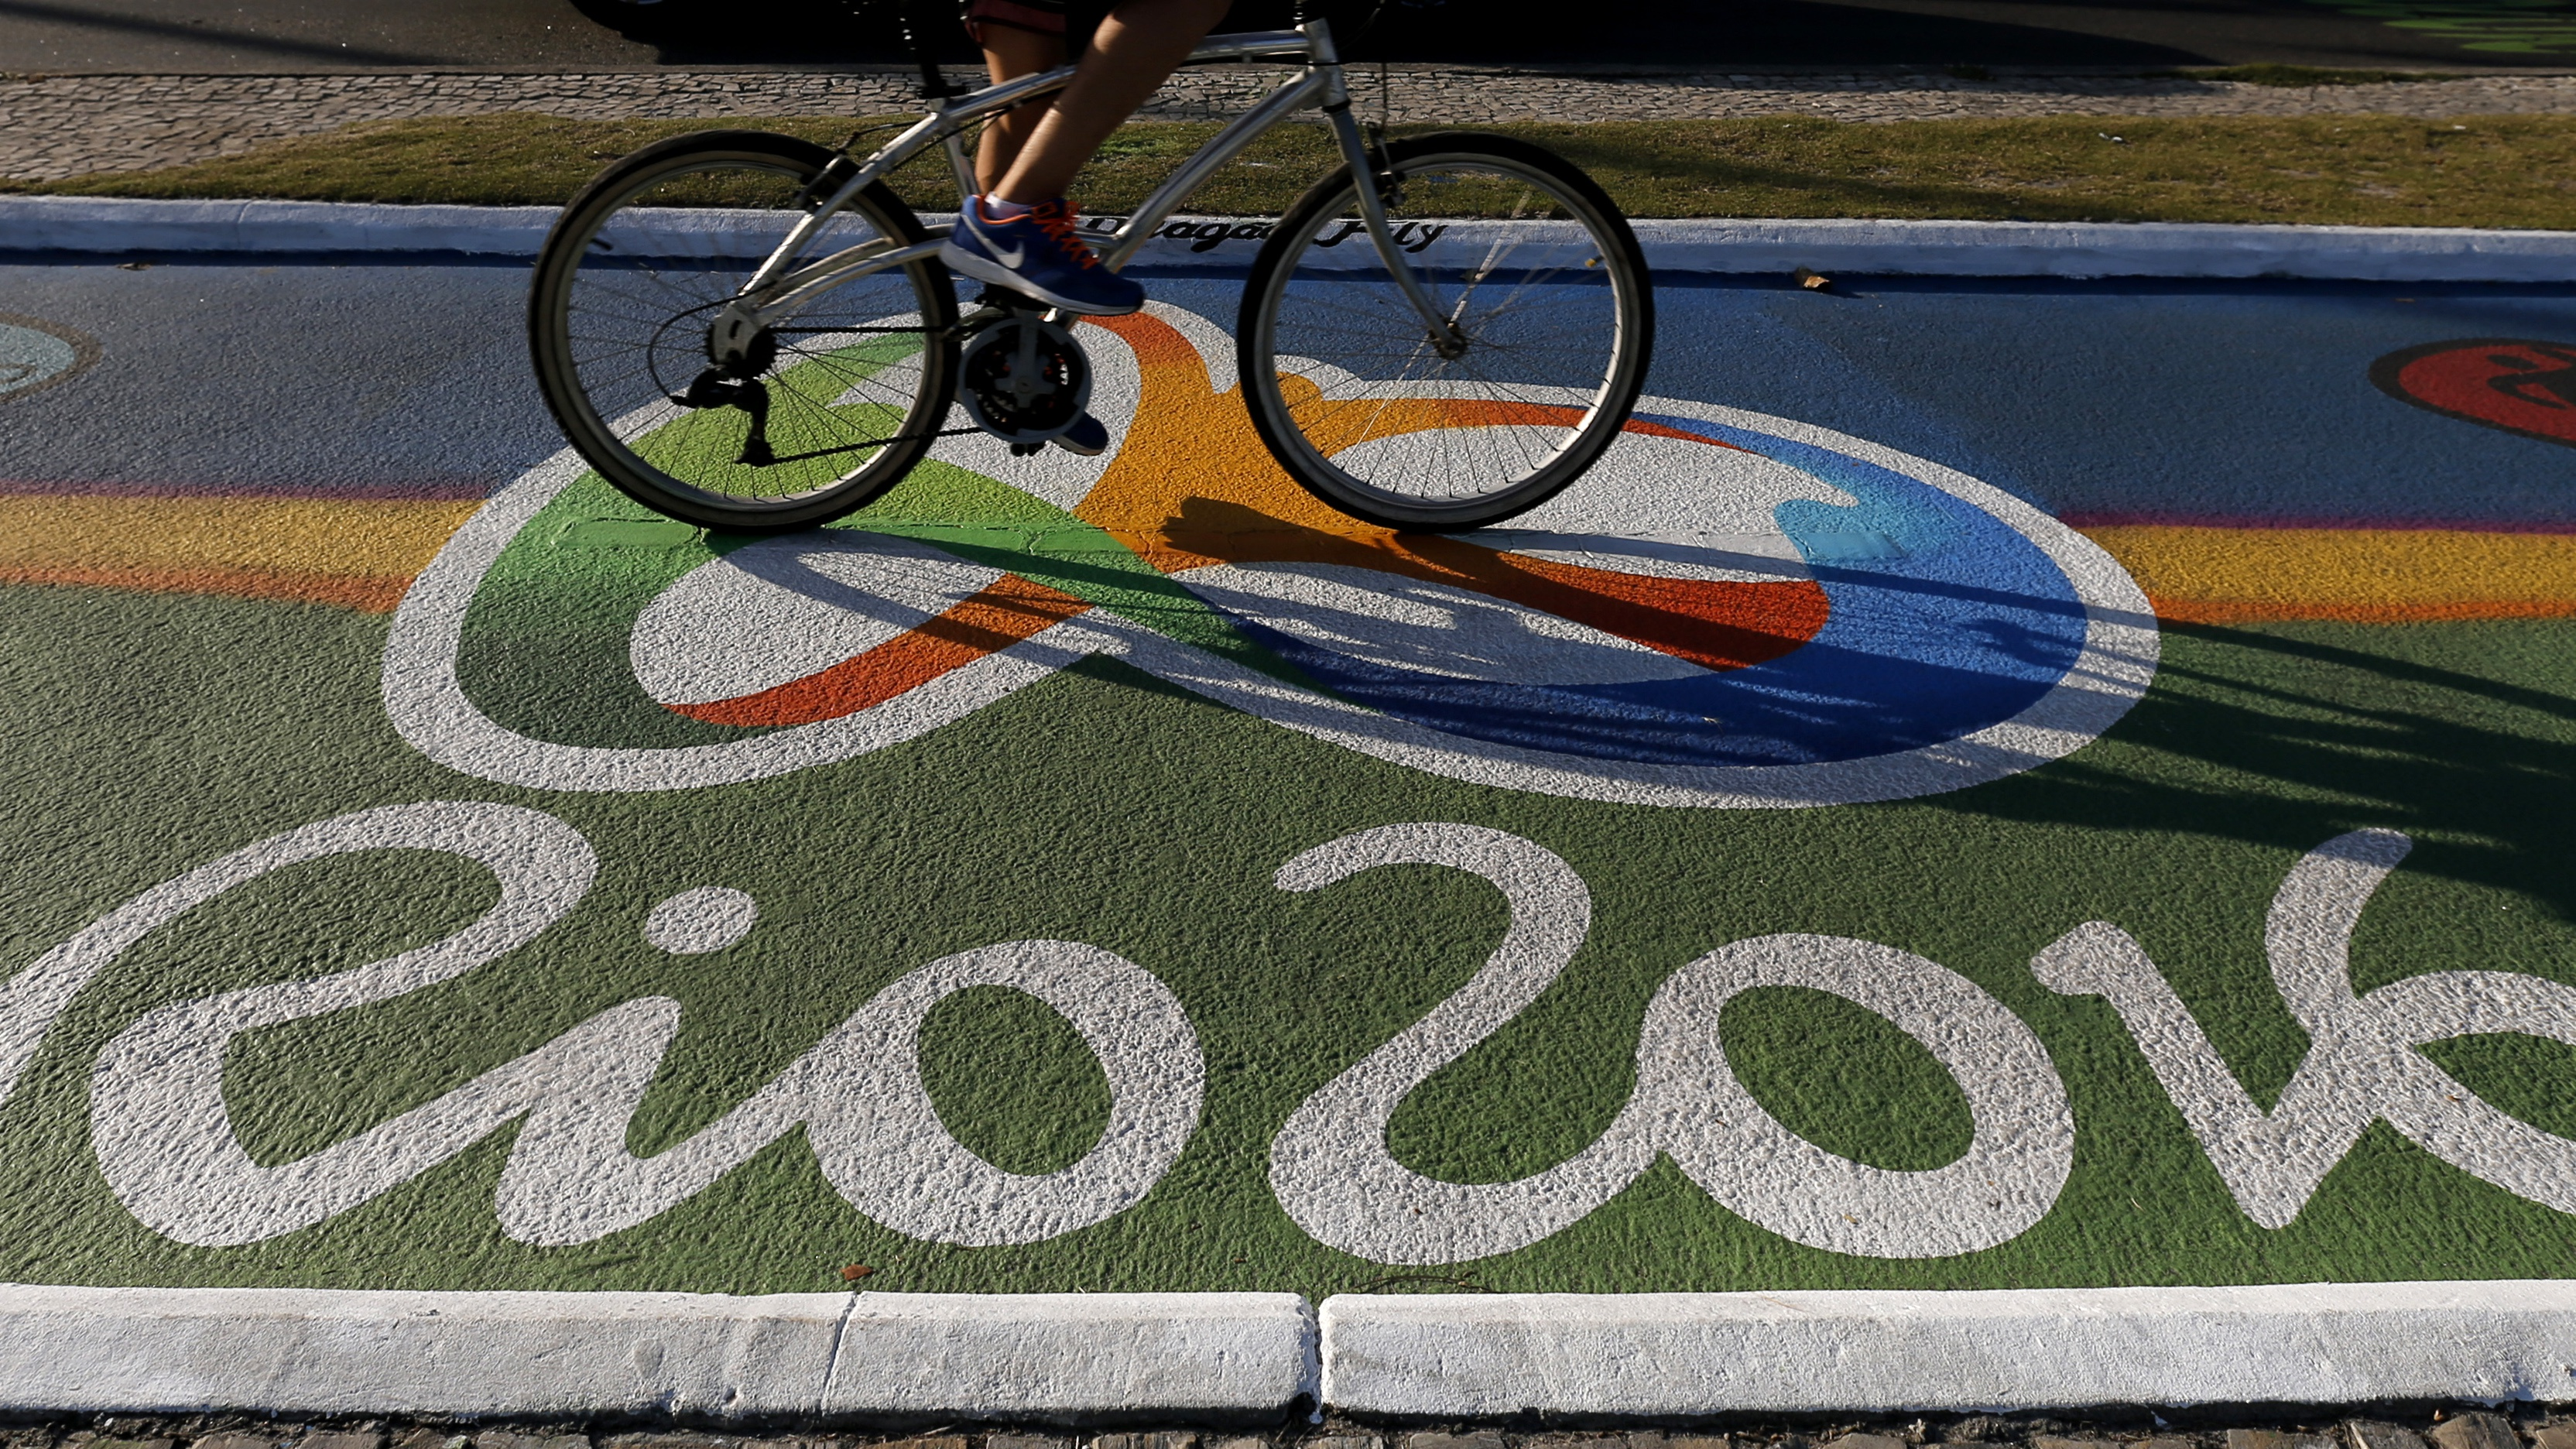 A woman rides her bicycle as she passes over a newly-painted bicyle lane ahead of the Rio 2016 Olympic games near Barra da Tijuca beach in Rio de Janeiro, Brazil, July 27, 2016. REUTERS/Sergio Moraes